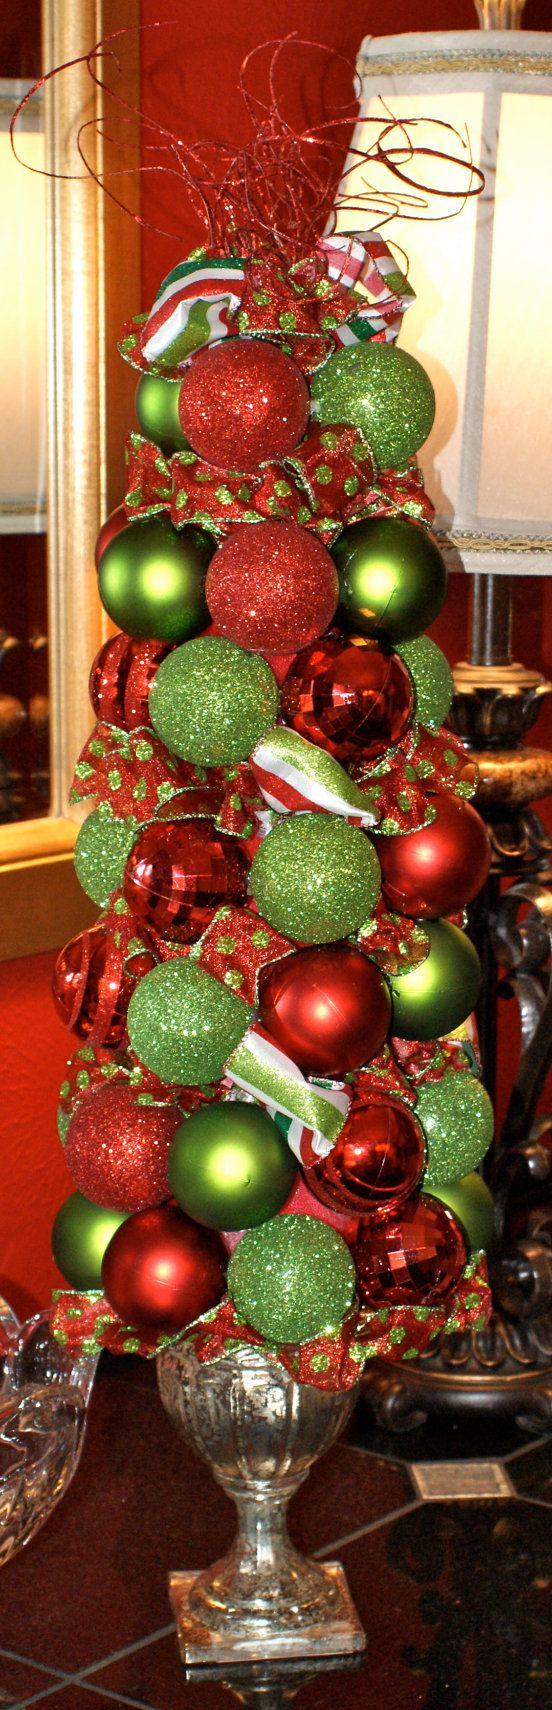 Top Outdoor Christmas Tree Decorations